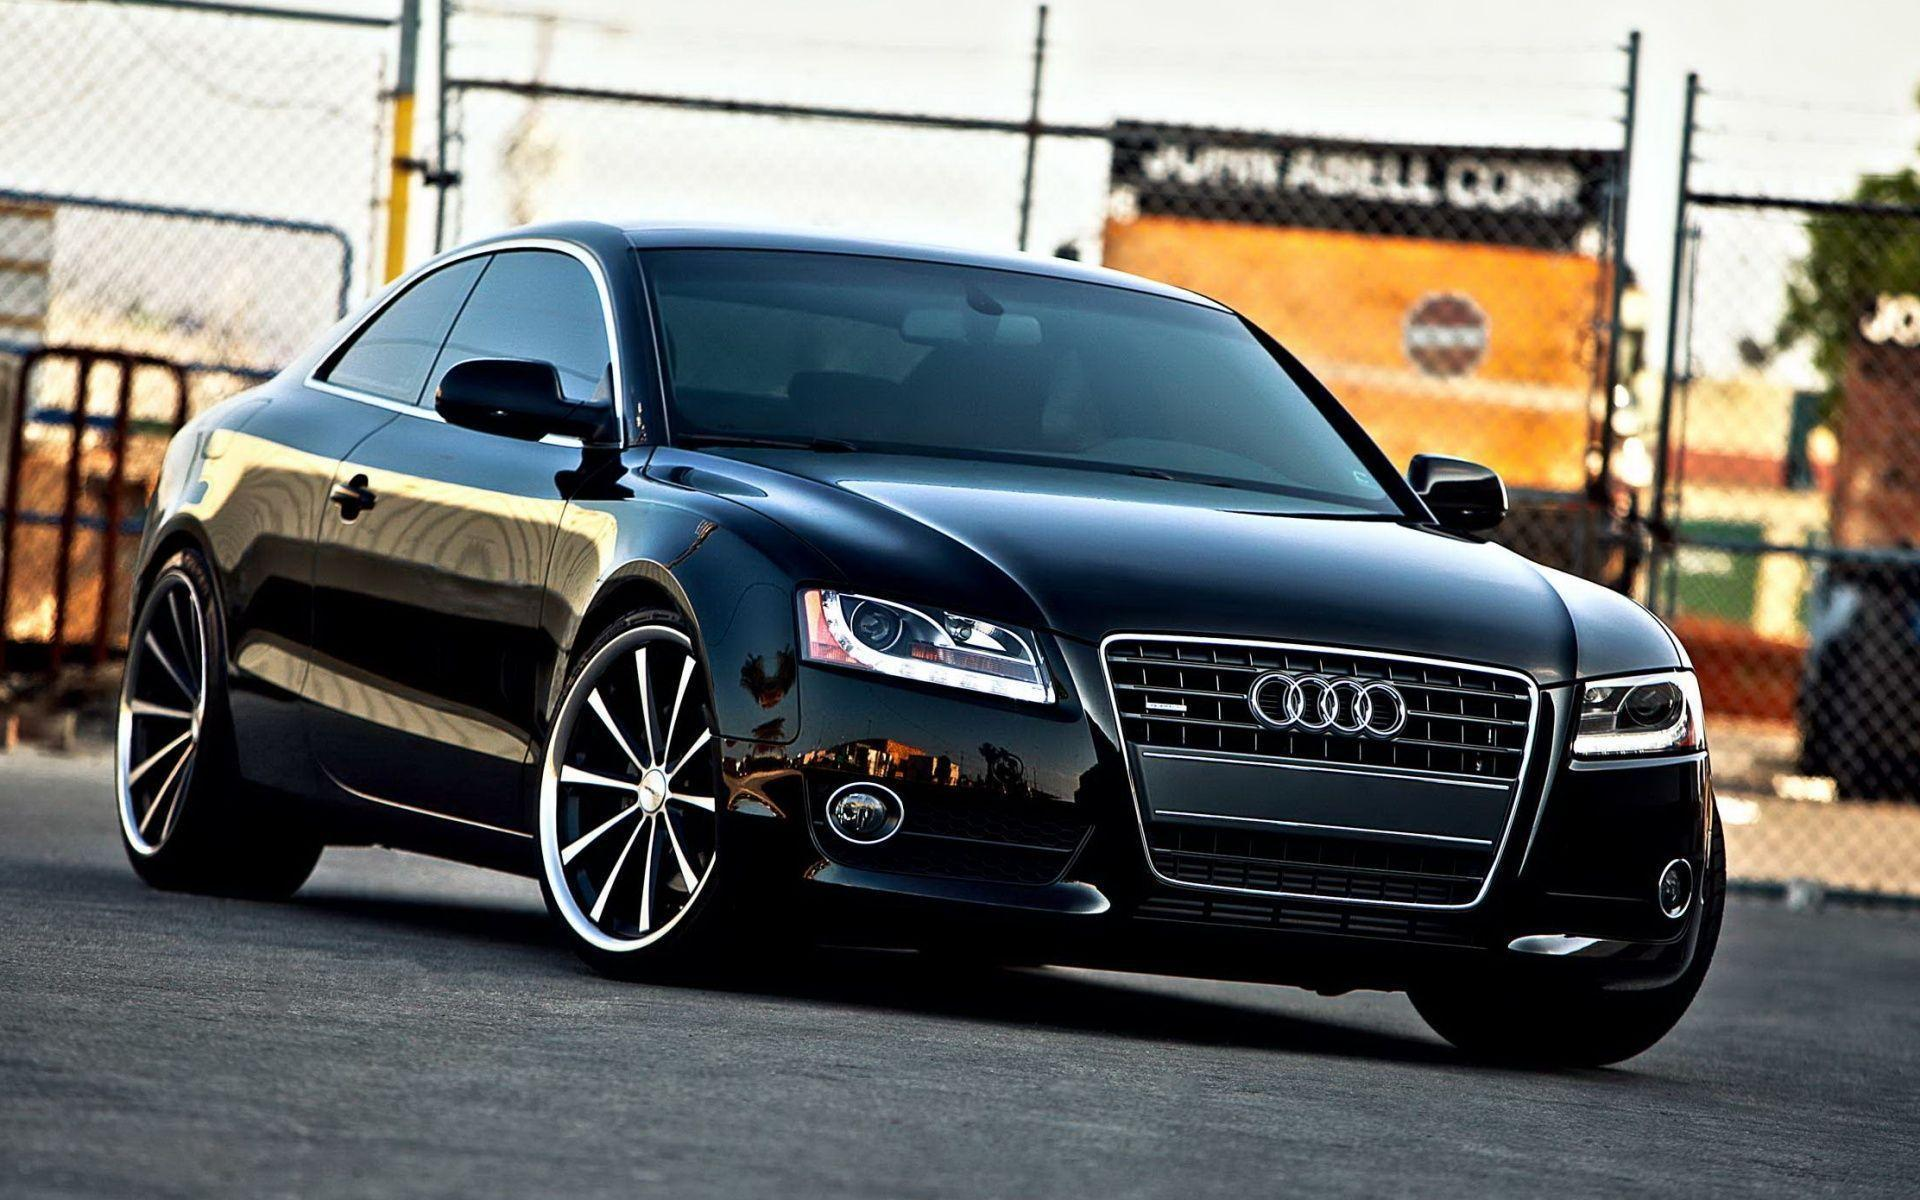 hight resolution of audi a5 coupe black 134 wallpaper hdcarphotos